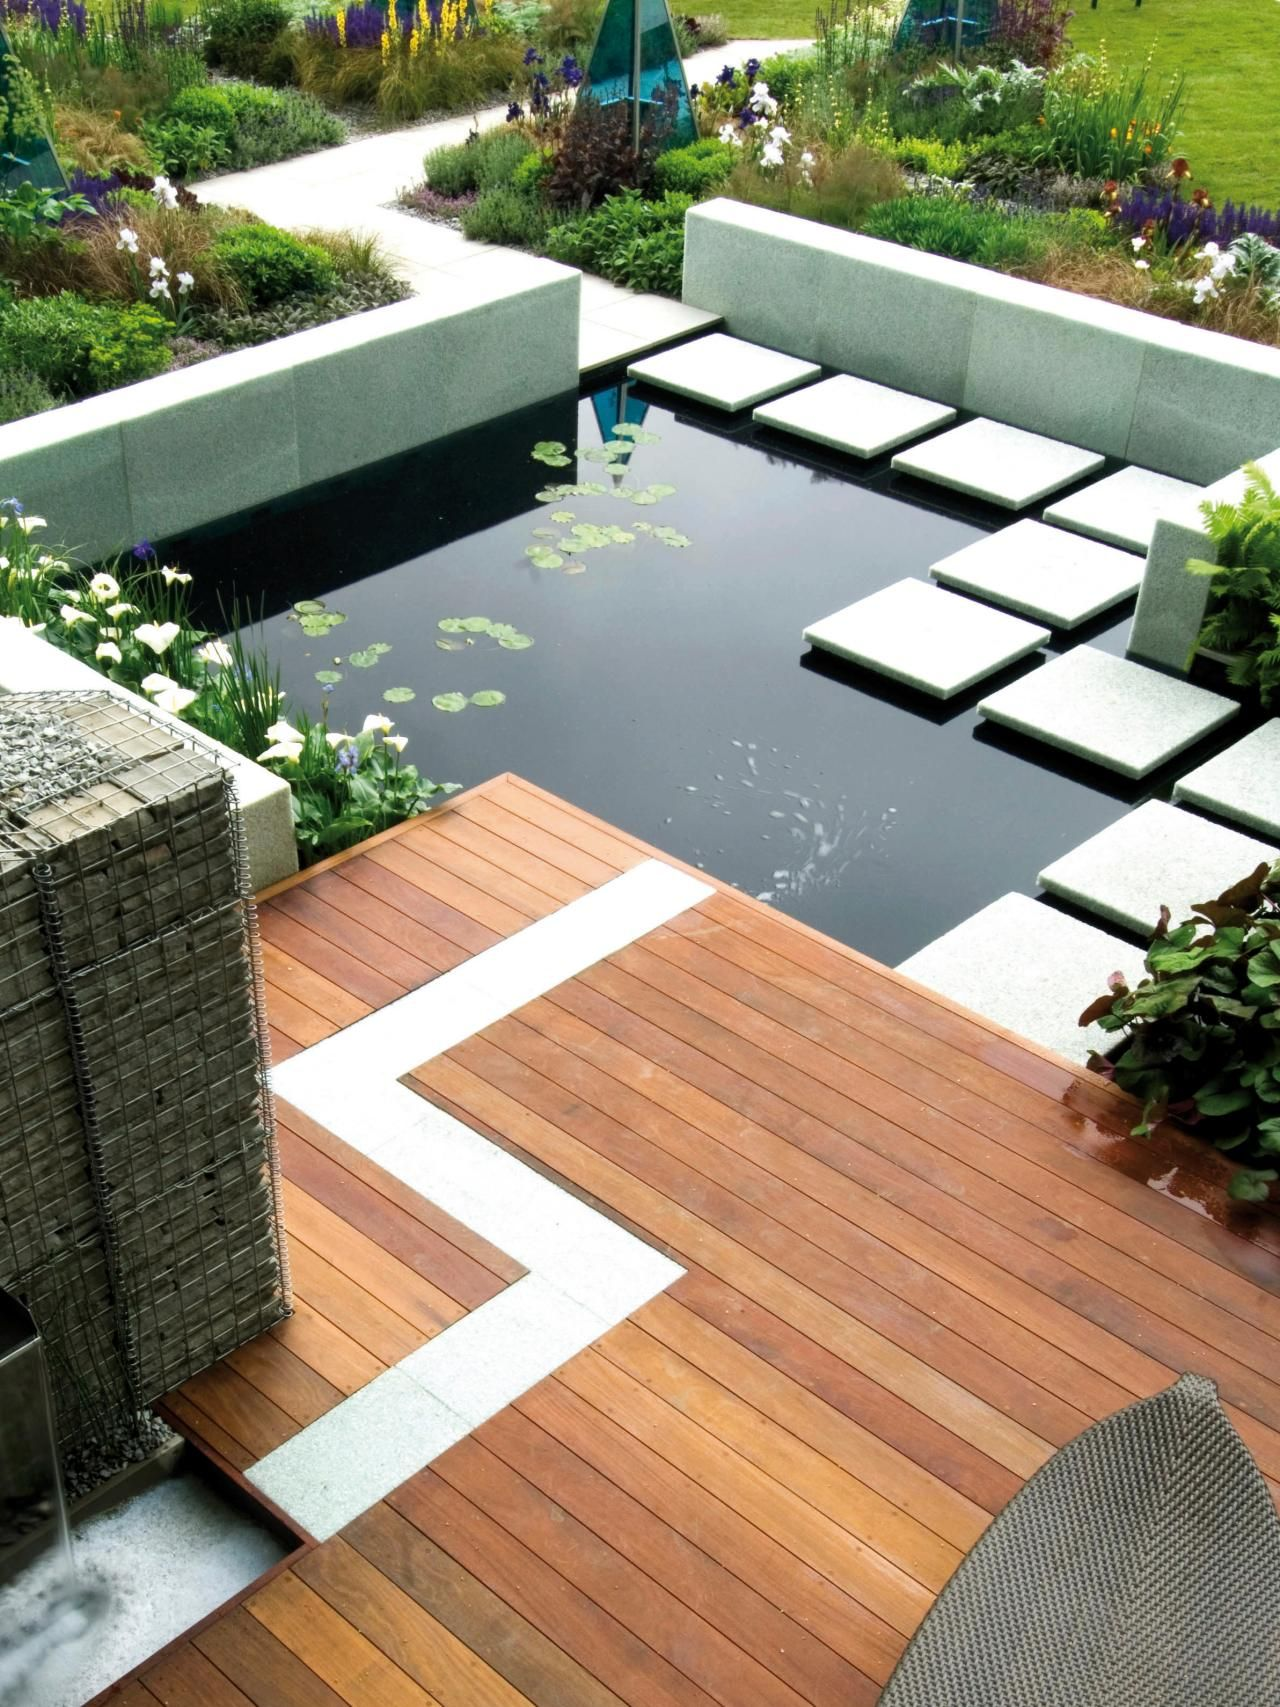 geometric designs create a bold landscape in this contemporary